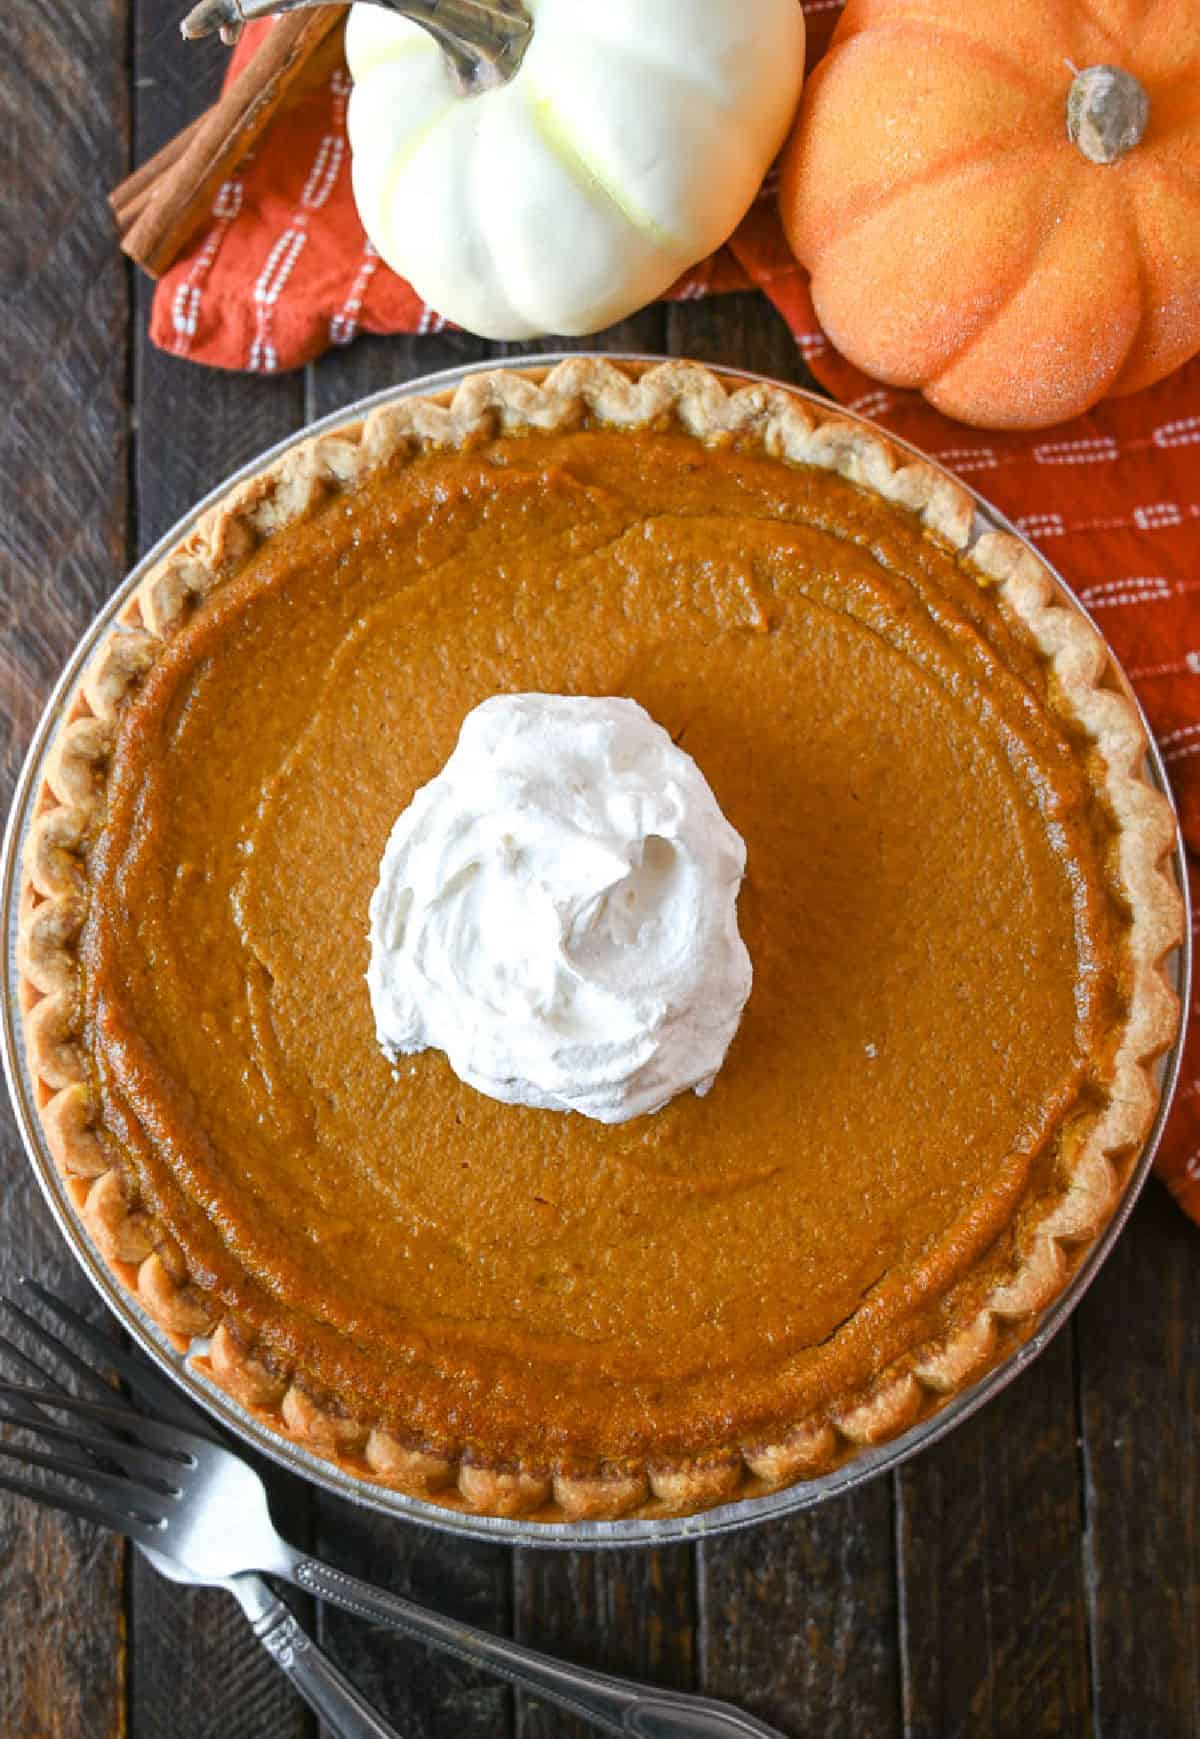 A whole buttermilk pumpkin pie with whipped cream in the center.